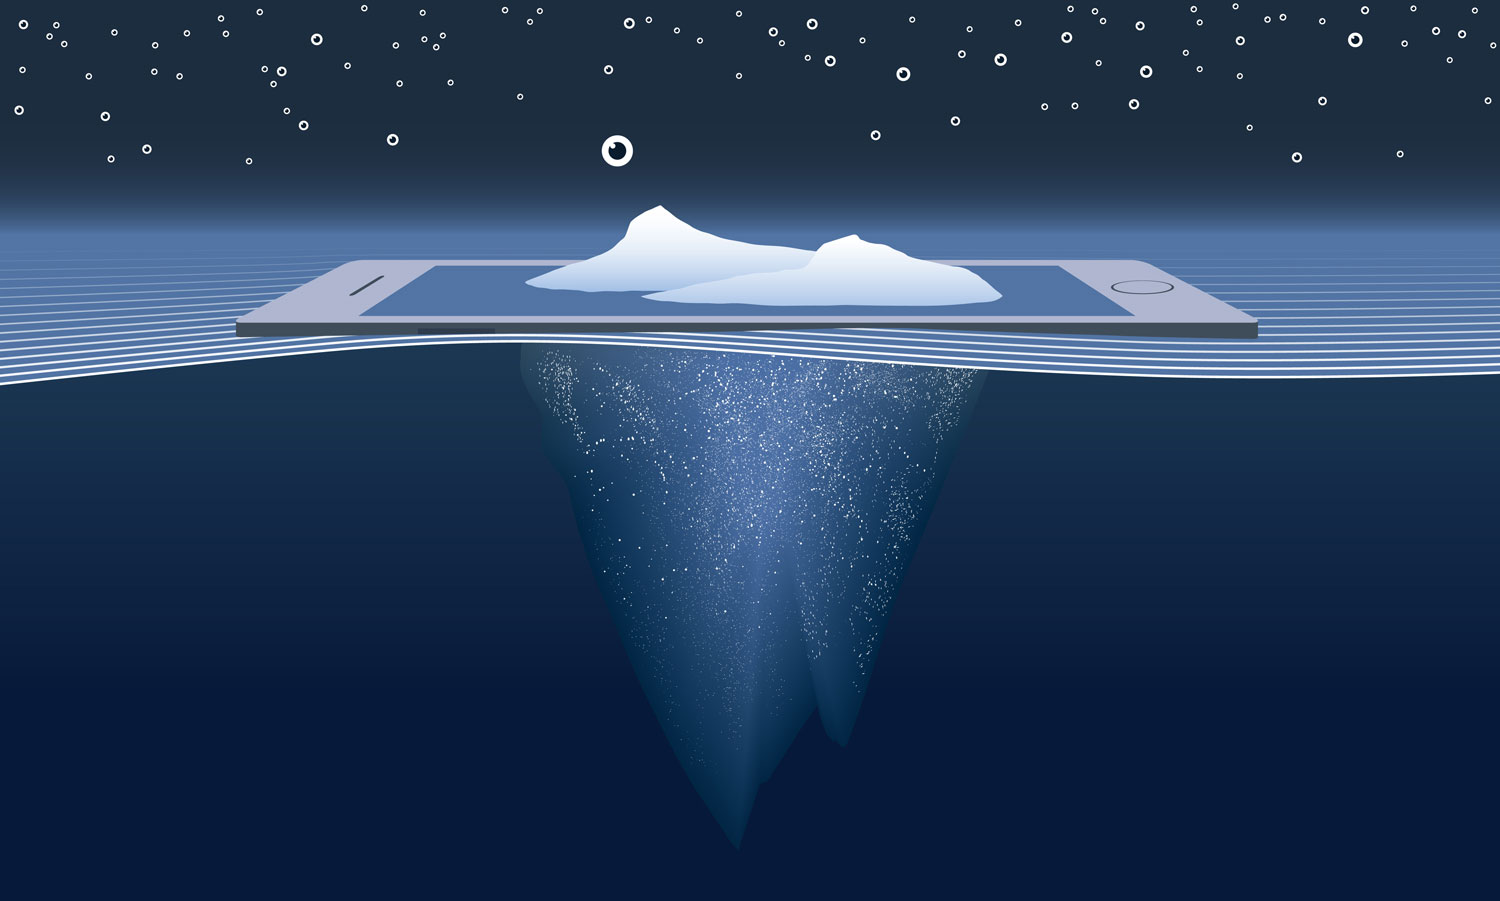 Le Big data, ou la partie invisible de l'iceberg.